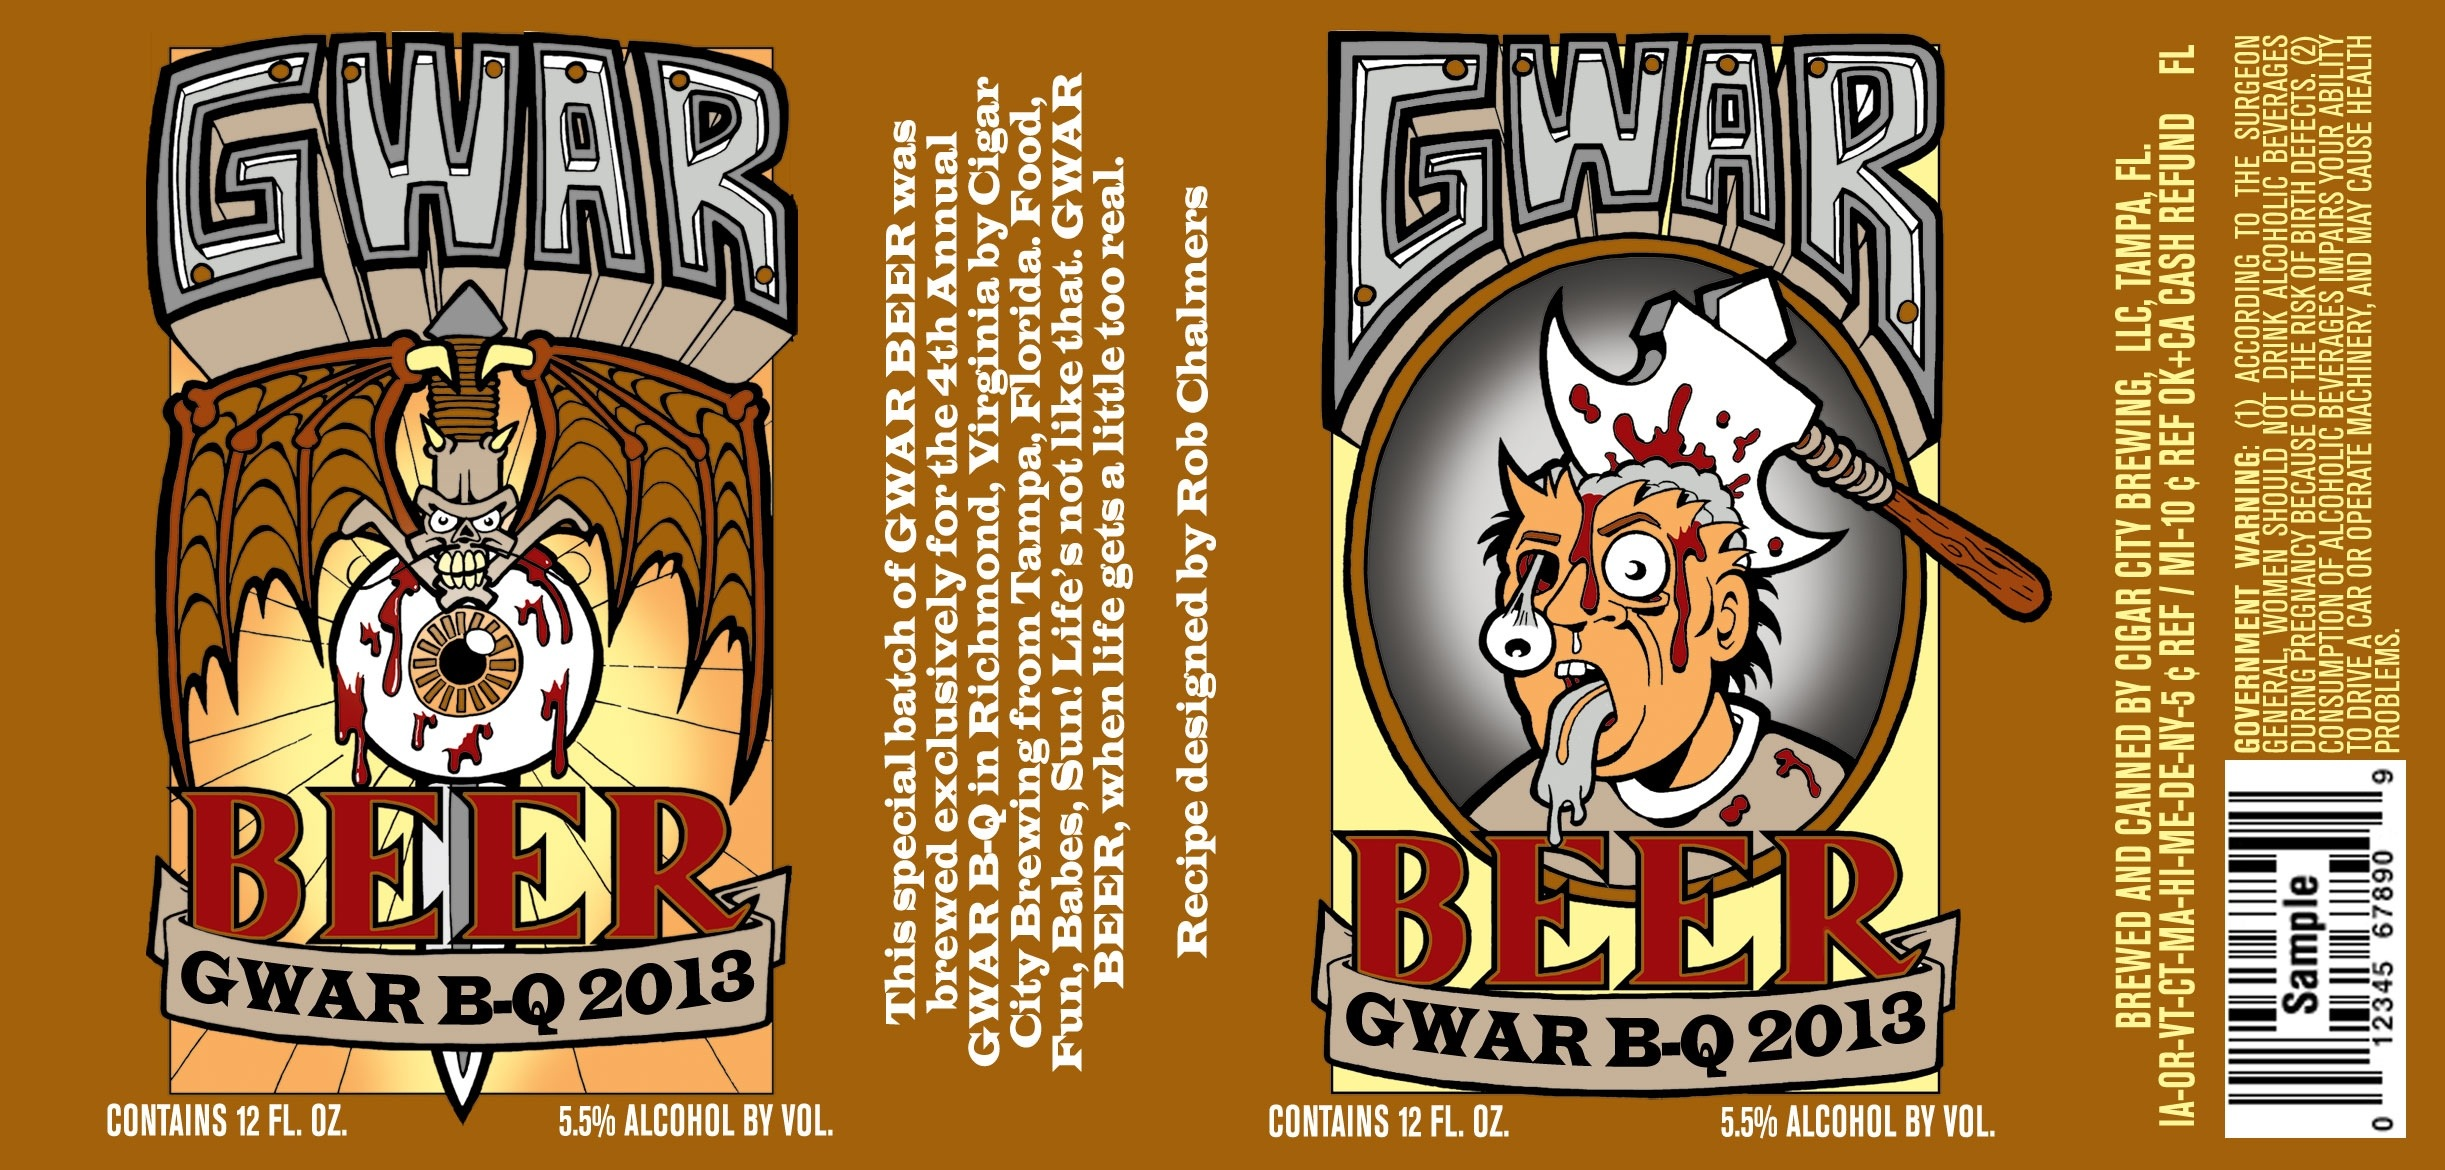 Gwar Beer, Rock Beer - 17 Cool Beers for Music Lovers